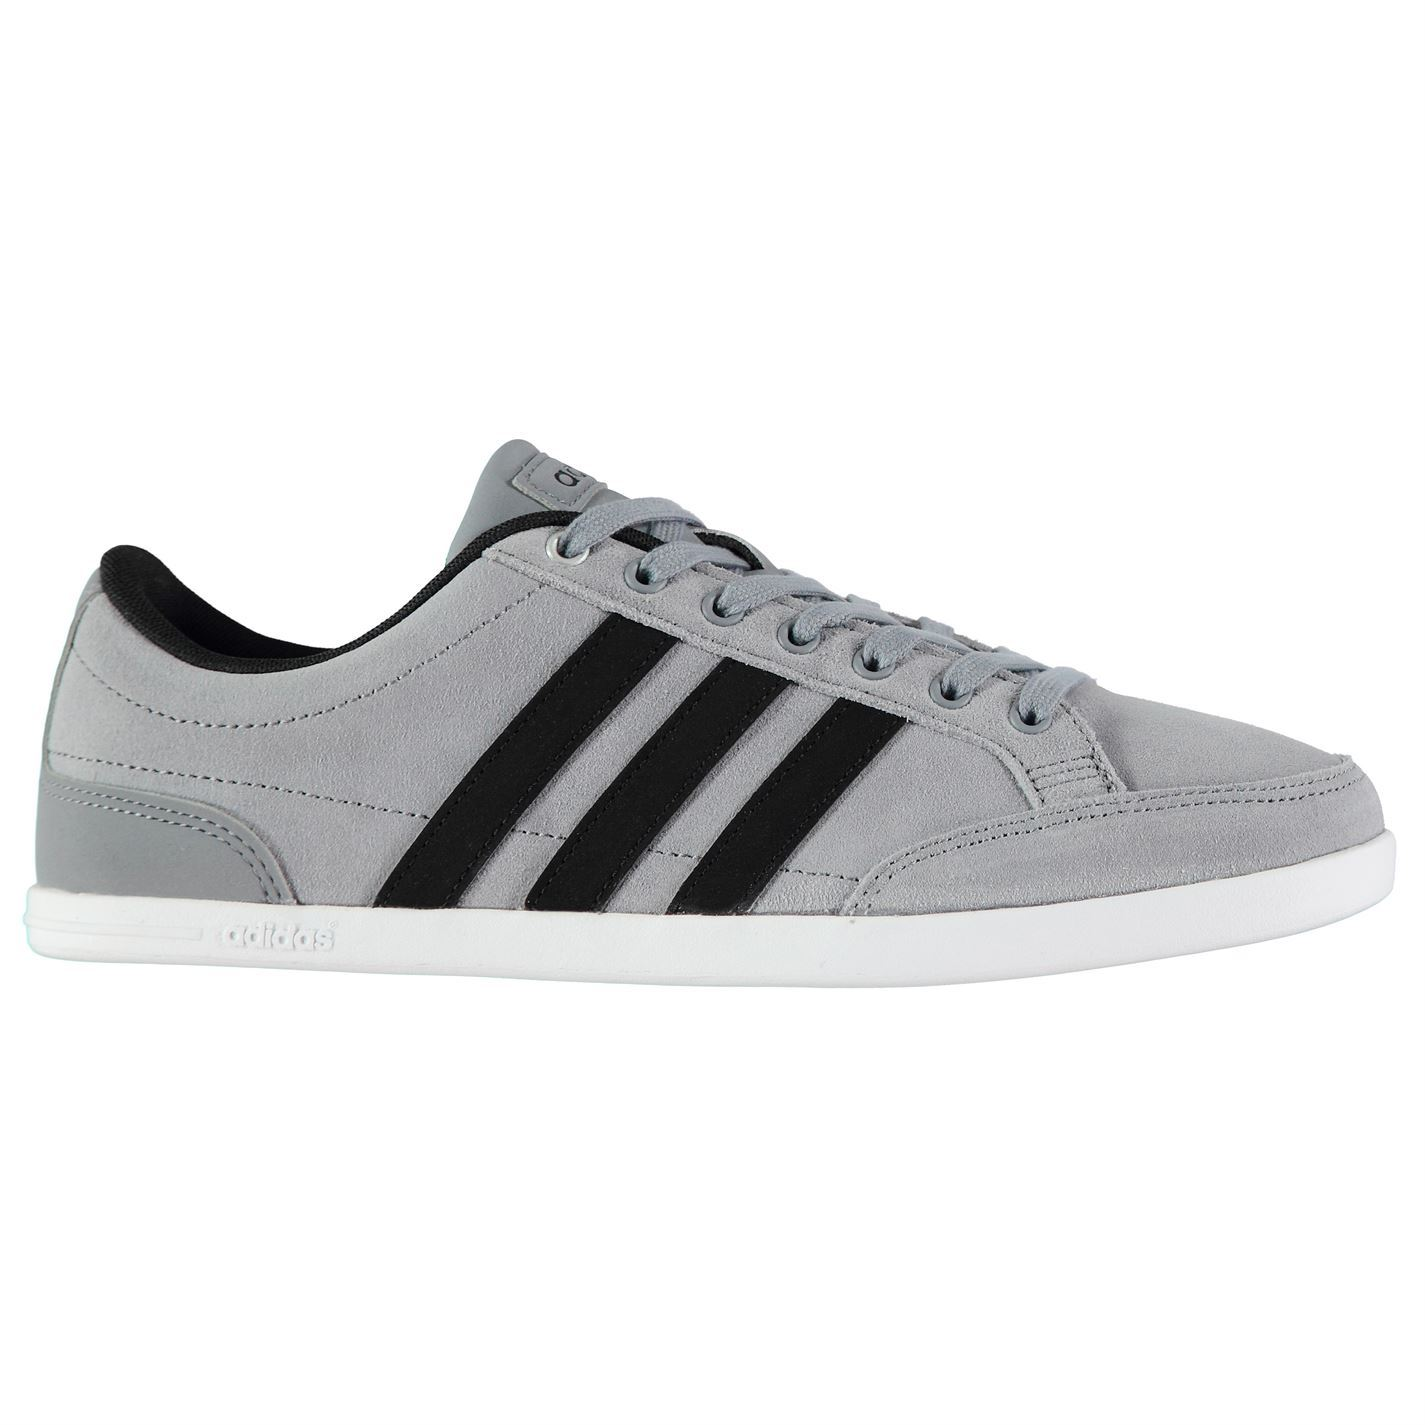 adidas-Mens-Gents-Caflaire-Suede-Trainers-Shoes-Footwear-Laces-Ankle-Collar